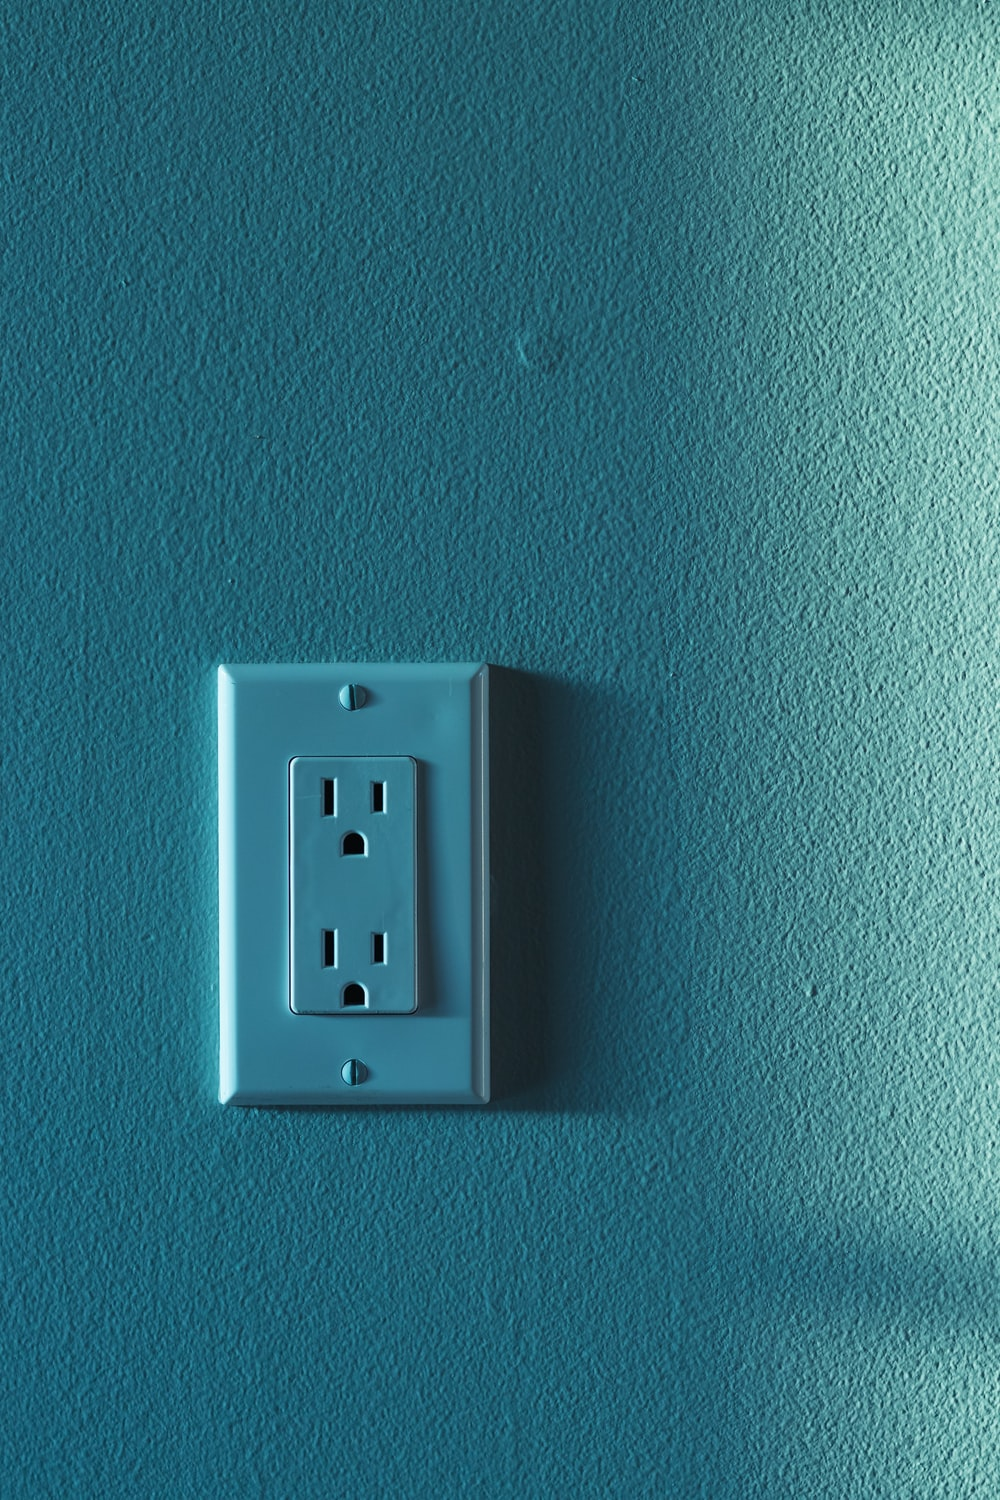 white wall mounted electric socket